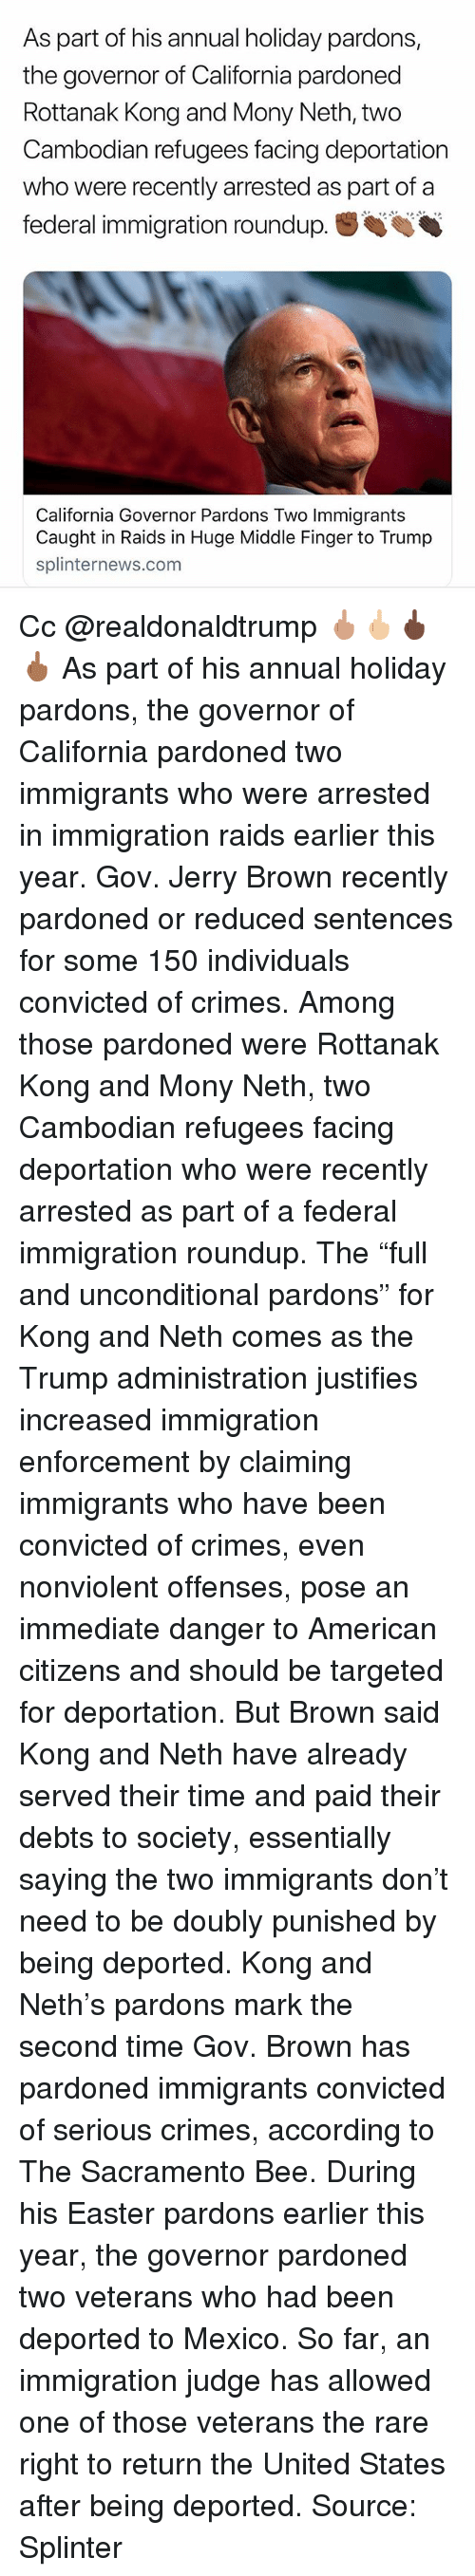 "Easter, Memes, and American: As part of his annual holiday pardons,  the governor of California pardoned  Rottanak Kong and Mony Neth, two  Cambodian refugees facing deportation  who were recently arrested as part of a  federal immigration roundup.  California Governor Pardons Two Immigrants  Caught in Raids in Huge Middle Finger to Trump  splinternews.com Cc @realdonaldtrump 🖕🏽🖕🏼🖕🏿🖕🏾 As part of his annual holiday pardons, the governor of California pardoned two immigrants who were arrested in immigration raids earlier this year. Gov. Jerry Brown recently pardoned or reduced sentences for some 150 individuals convicted of crimes. Among those pardoned were Rottanak Kong and Mony Neth, two Cambodian refugees facing deportation who were recently arrested as part of a federal immigration roundup. The ""full and unconditional pardons"" for Kong and Neth comes as the Trump administration justifies increased immigration enforcement by claiming immigrants who have been convicted of crimes, even nonviolent offenses, pose an immediate danger to American citizens and should be targeted for deportation. But Brown said Kong and Neth have already served their time and paid their debts to society, essentially saying the two immigrants don't need to be doubly punished by being deported. Kong and Neth's pardons mark the second time Gov. Brown has pardoned immigrants convicted of serious crimes, according to The Sacramento Bee. During his Easter pardons earlier this year, the governor pardoned two veterans who had been deported to Mexico. So far, an immigration judge has allowed one of those veterans the rare right to return the United States after being deported. Source: Splinter"